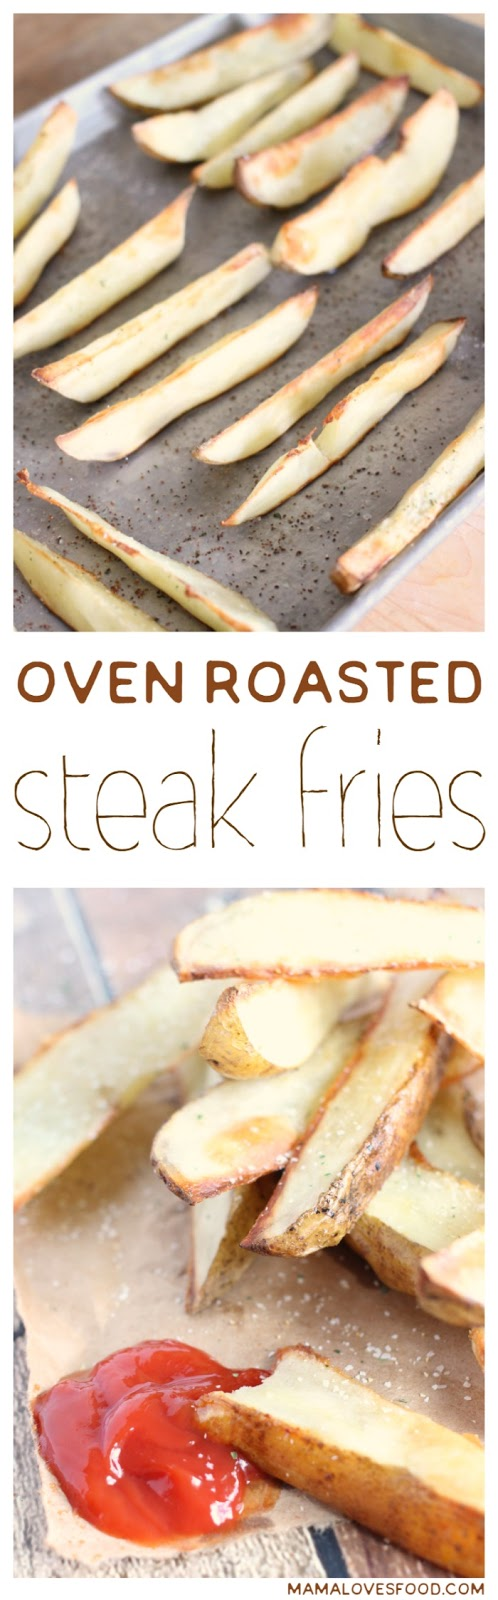 Oven Roasted Steak Fries Recipe